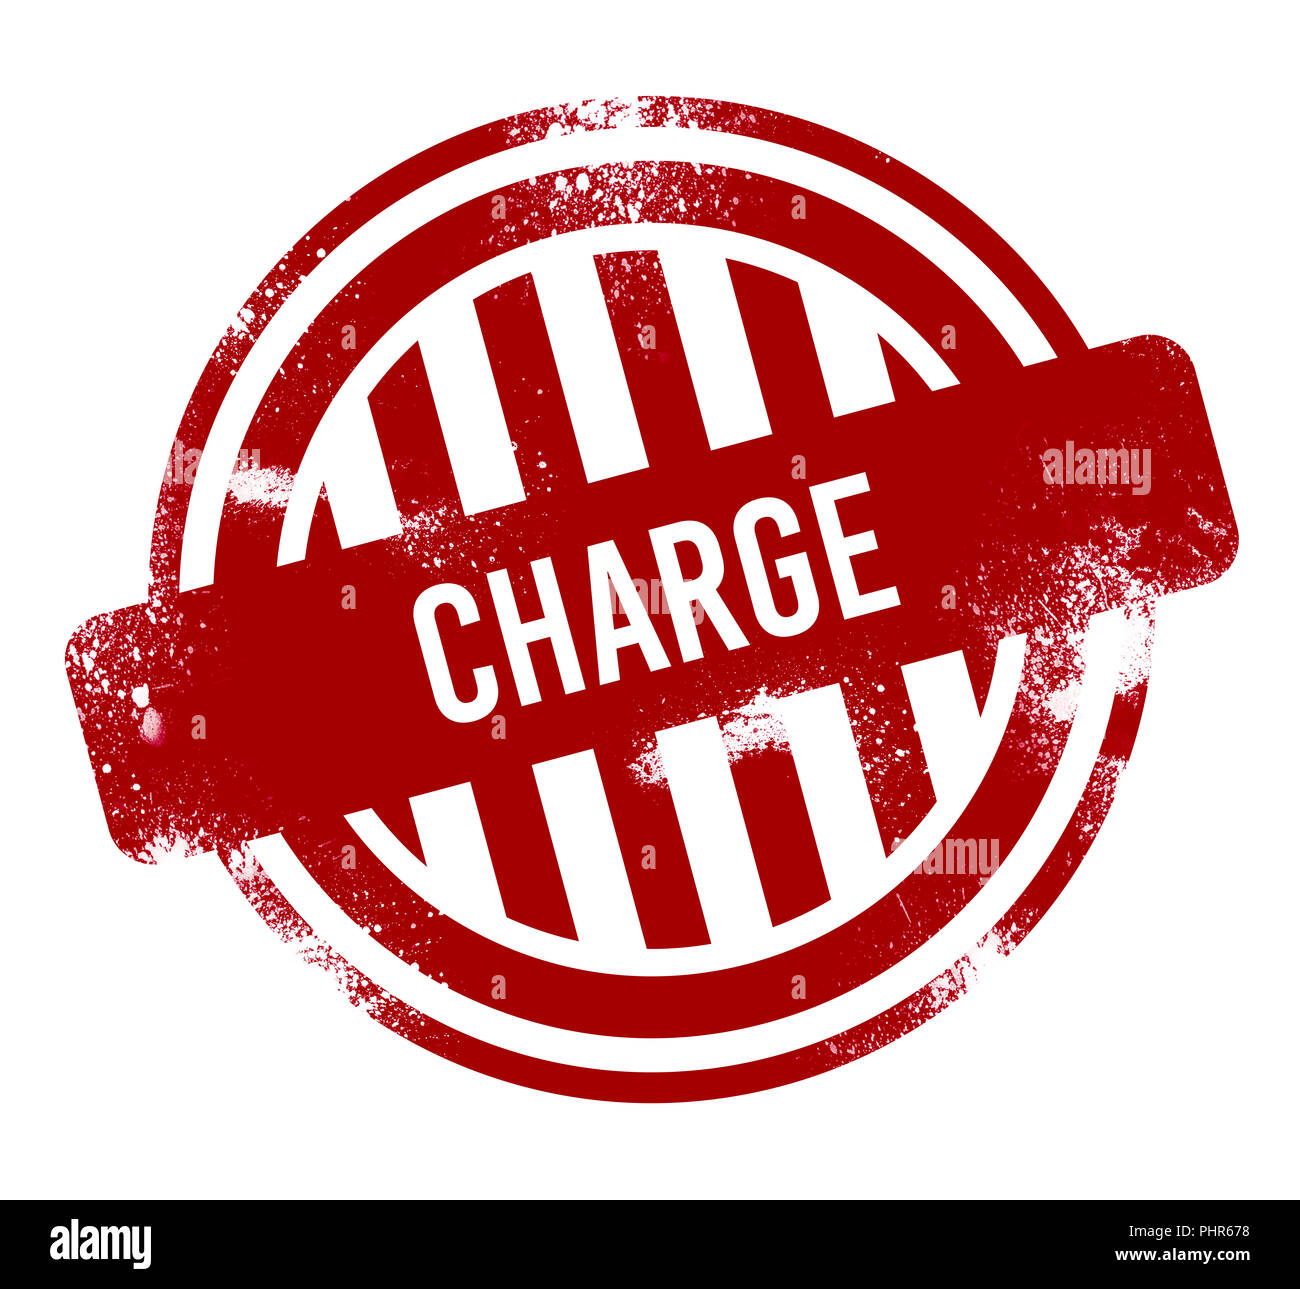 charge - red grunge button, stamp - Stock Image